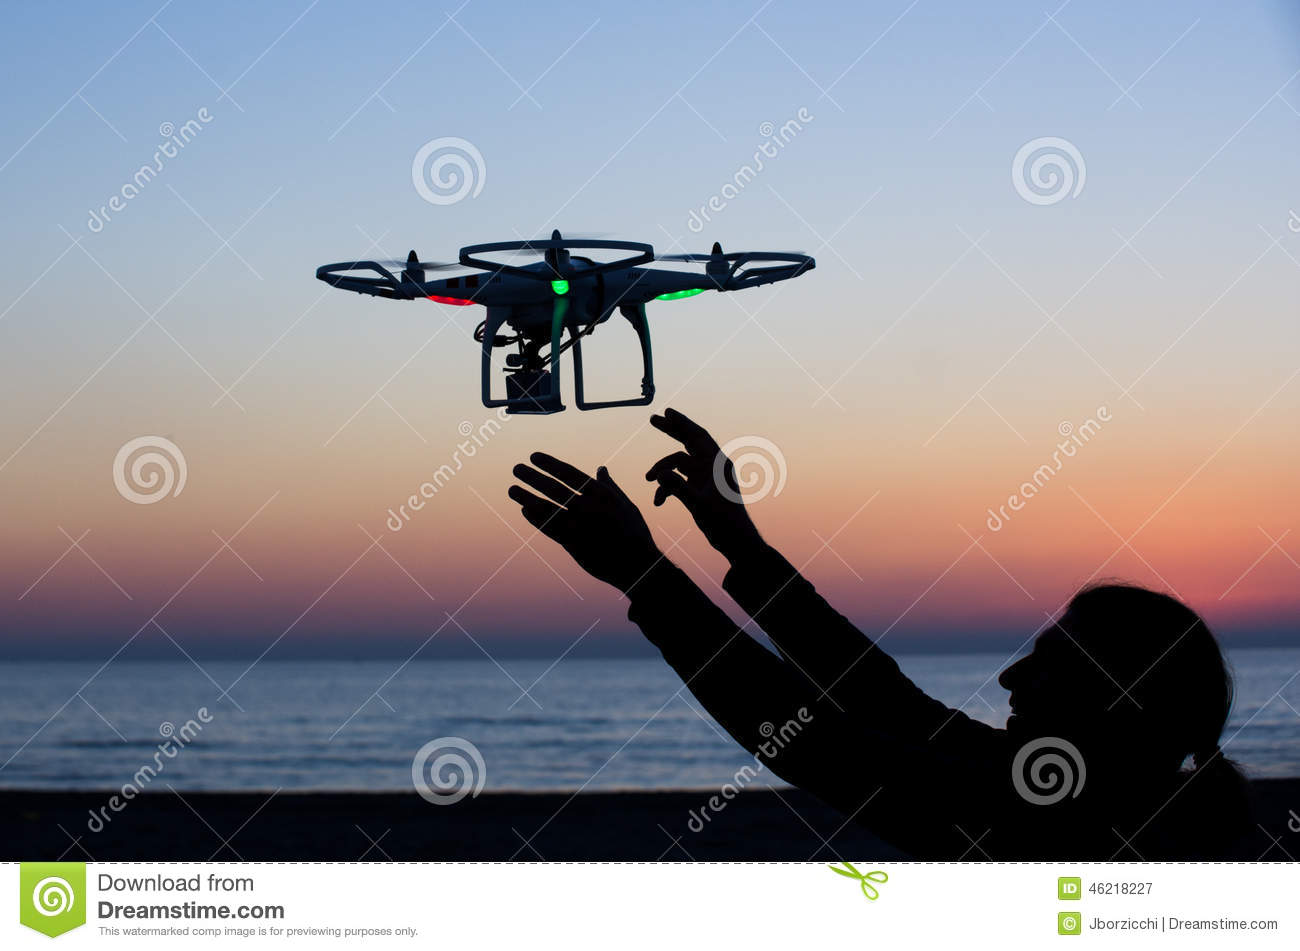 flying camera helicopter with Stock Photo Flying Drone Camera Sky Sunset Taking Off Man S Hand Near Seaside Image46218227 on 3345096669 besides Gifts Your 9 Year Old Tween Girl Will Love besides Drone   Transparent Image 2 additionally Cannock Chase Quadcopter Drone Captures Video Footage Infamous Black Eyed Child 1497437 additionally Watch A Helicopter Do The Impossible And Fly Upside Down.